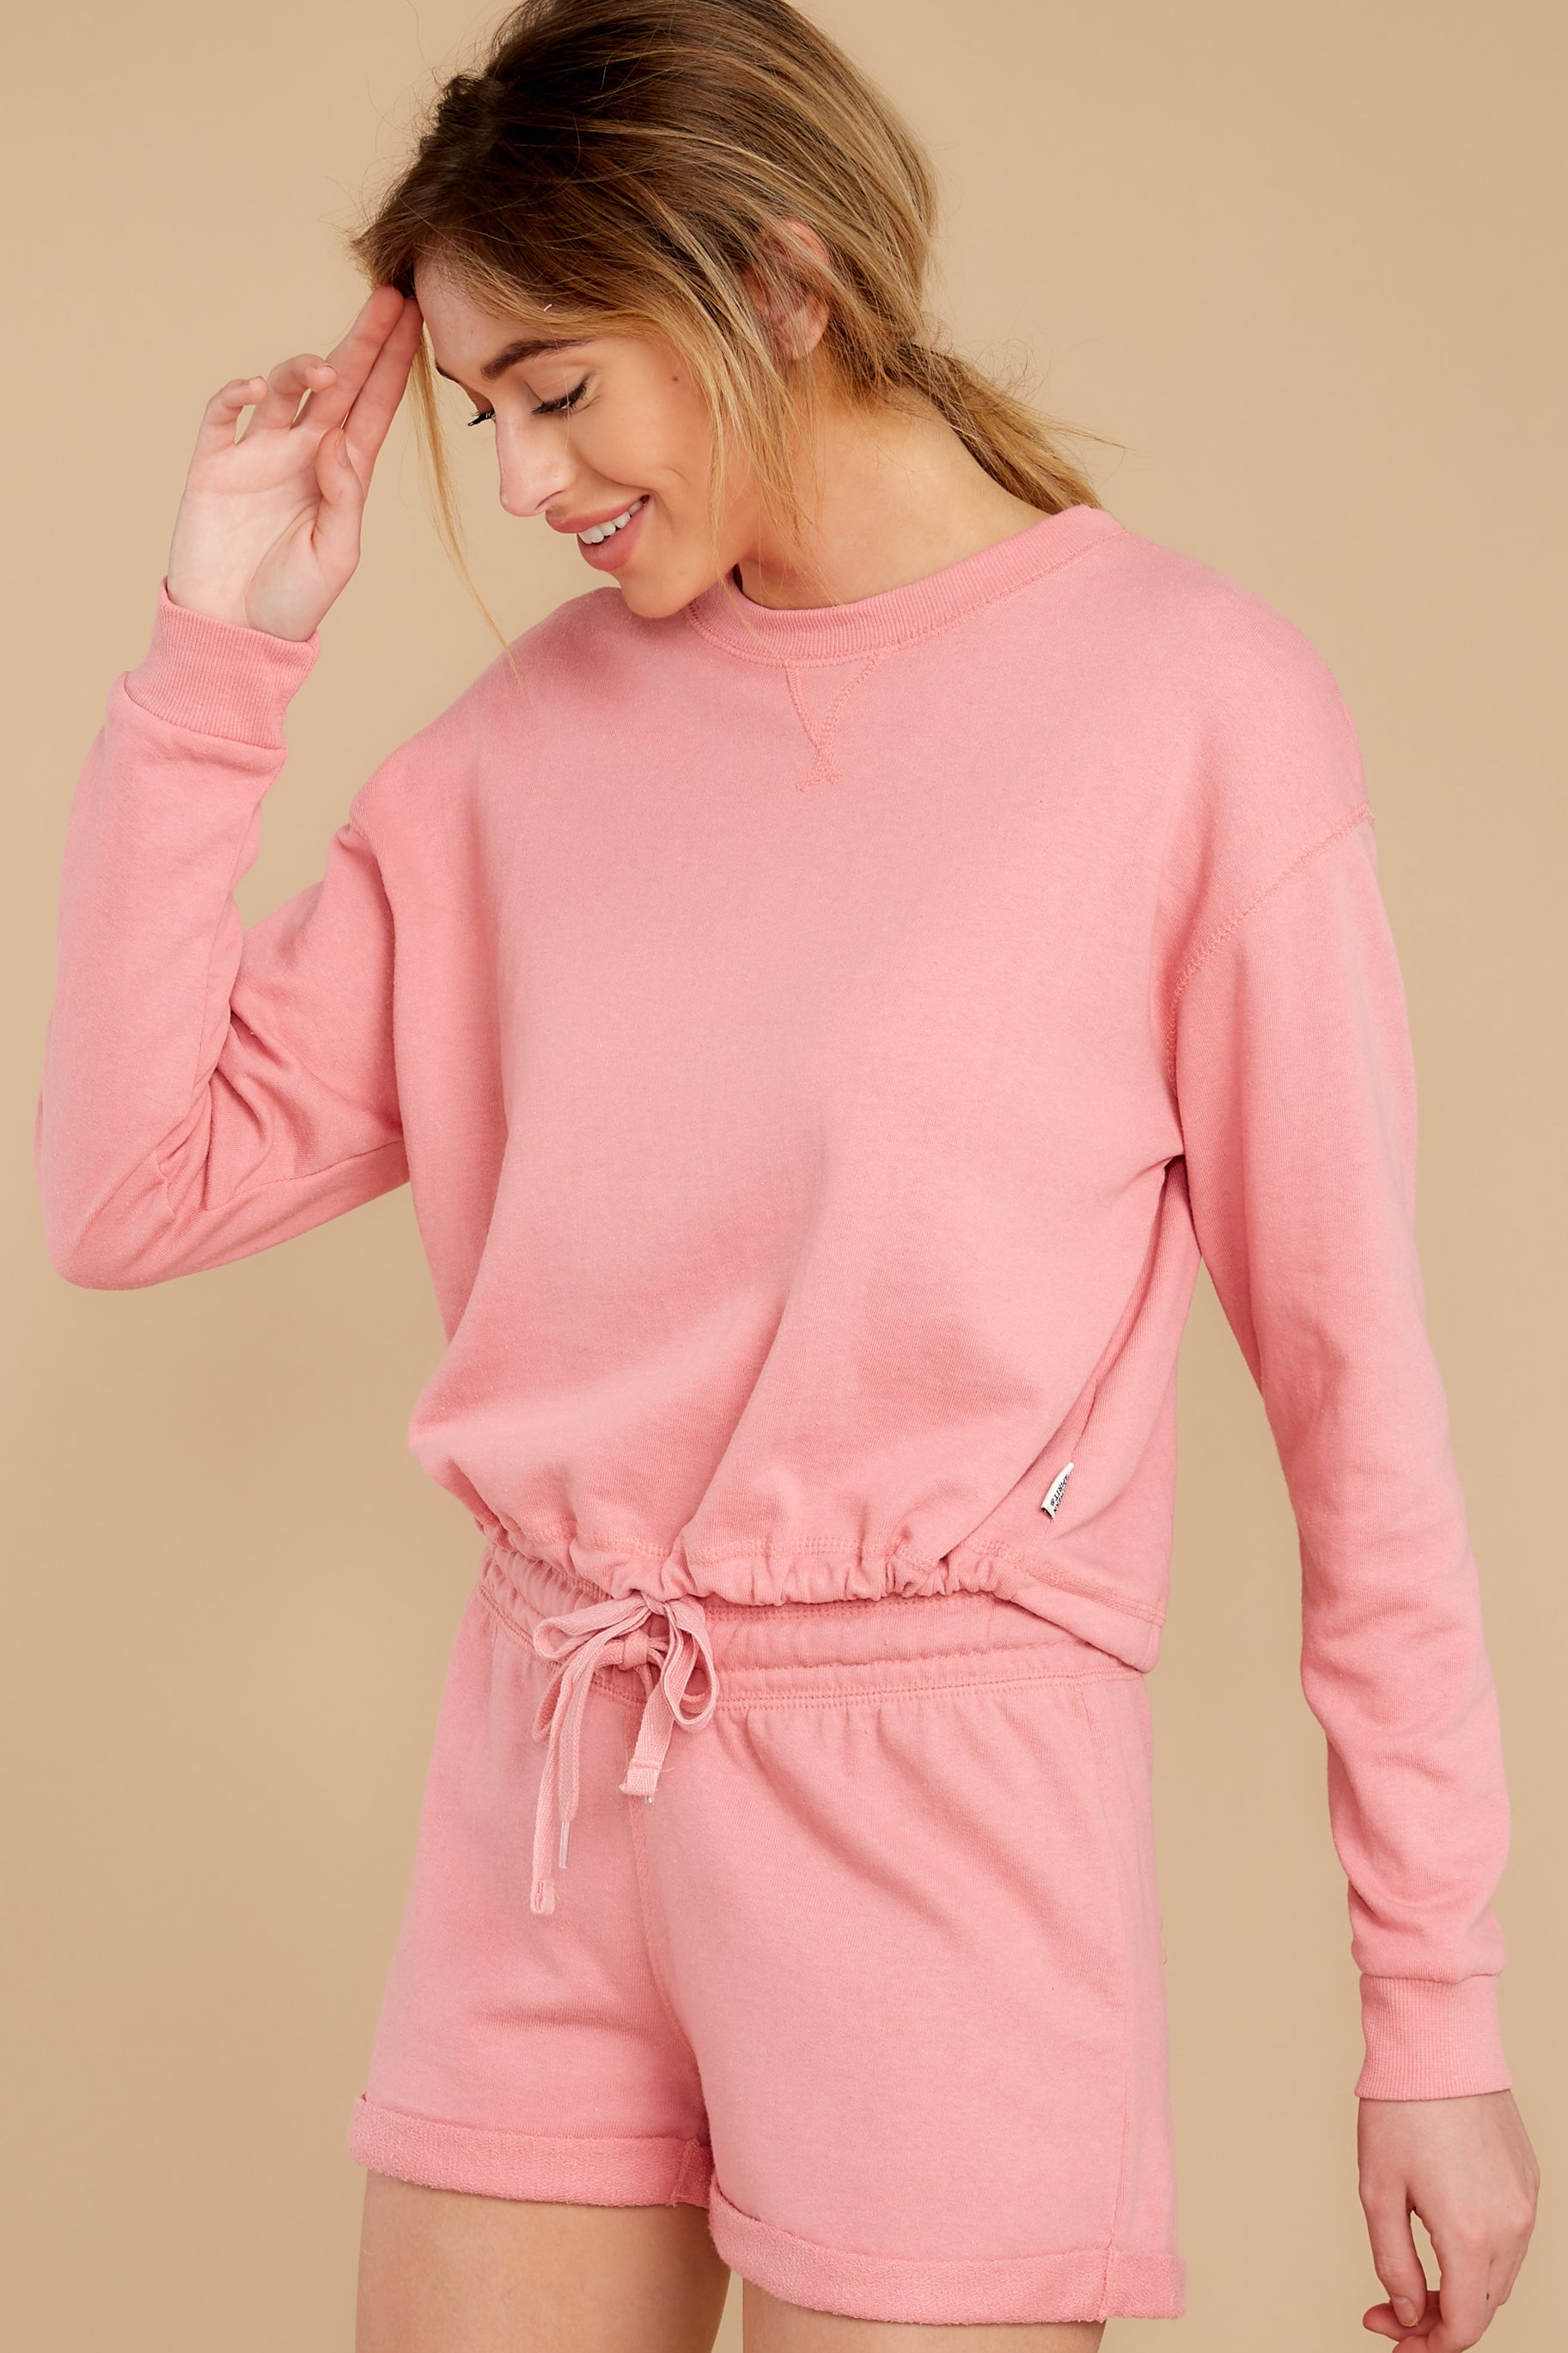 6 Cozy As Can Be Rose Pink Sweatshirt at reddress.com